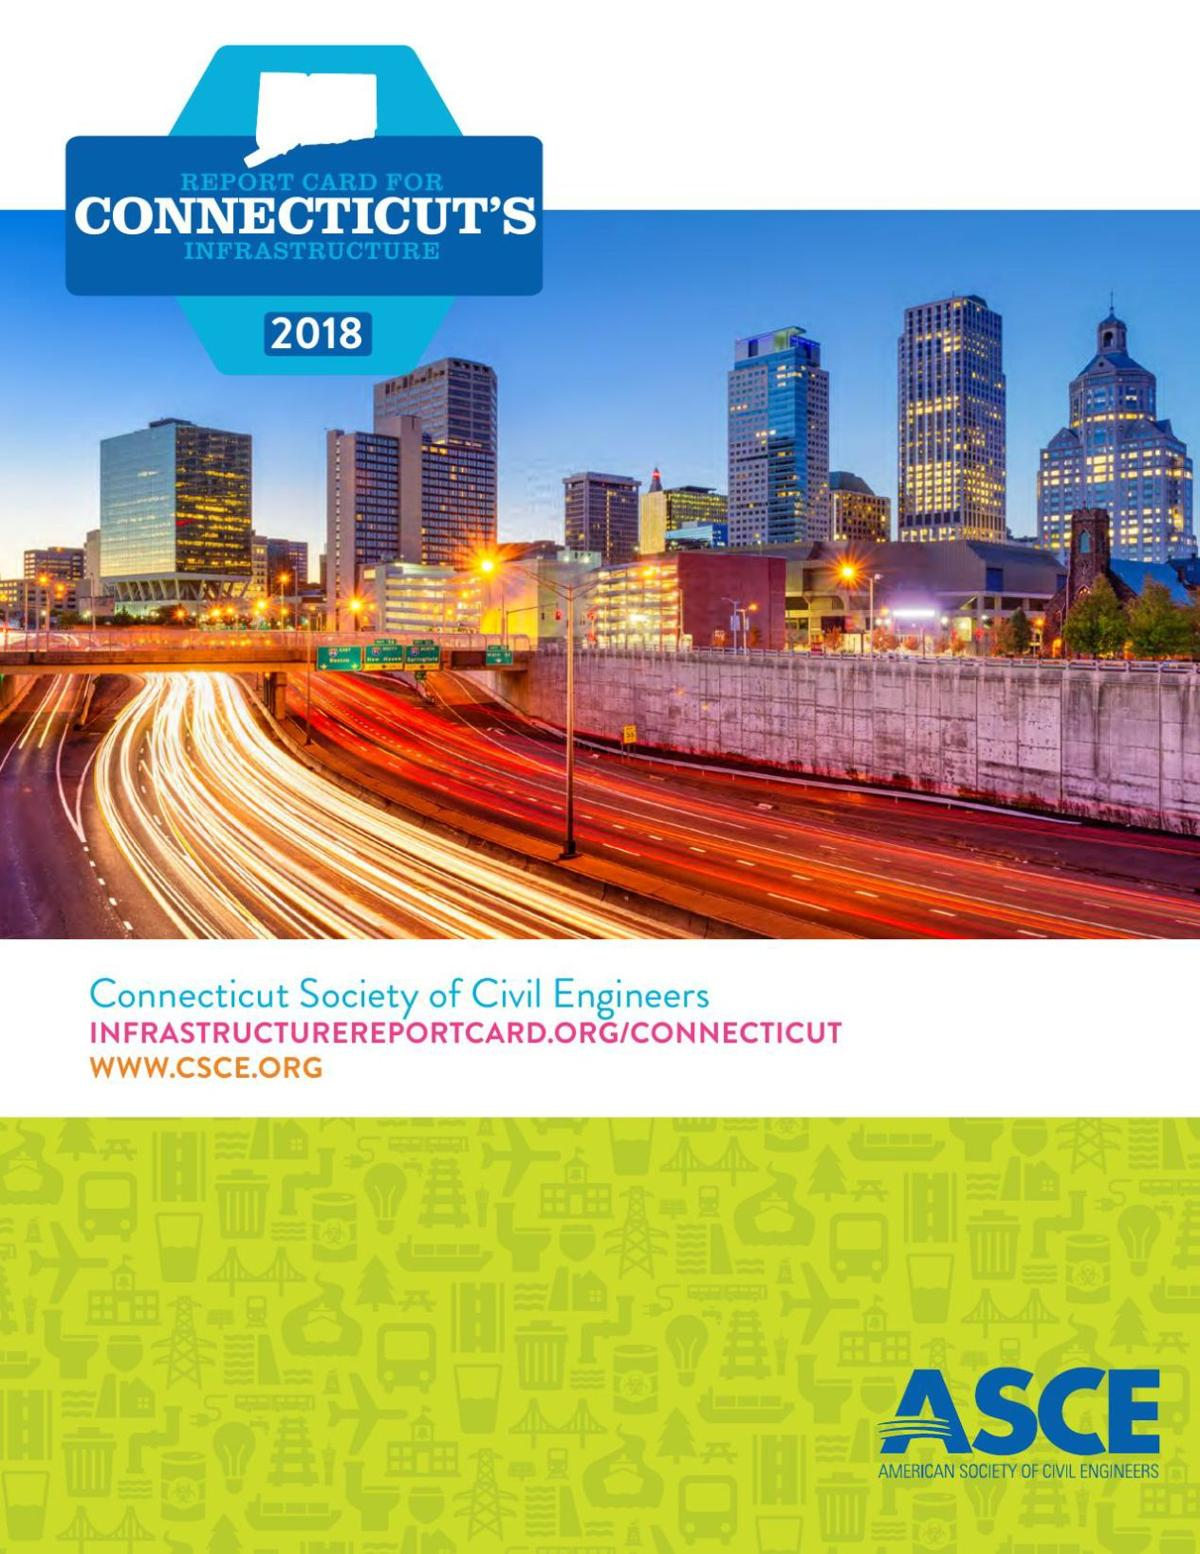 Connecticut 2018 Infrastructure Report